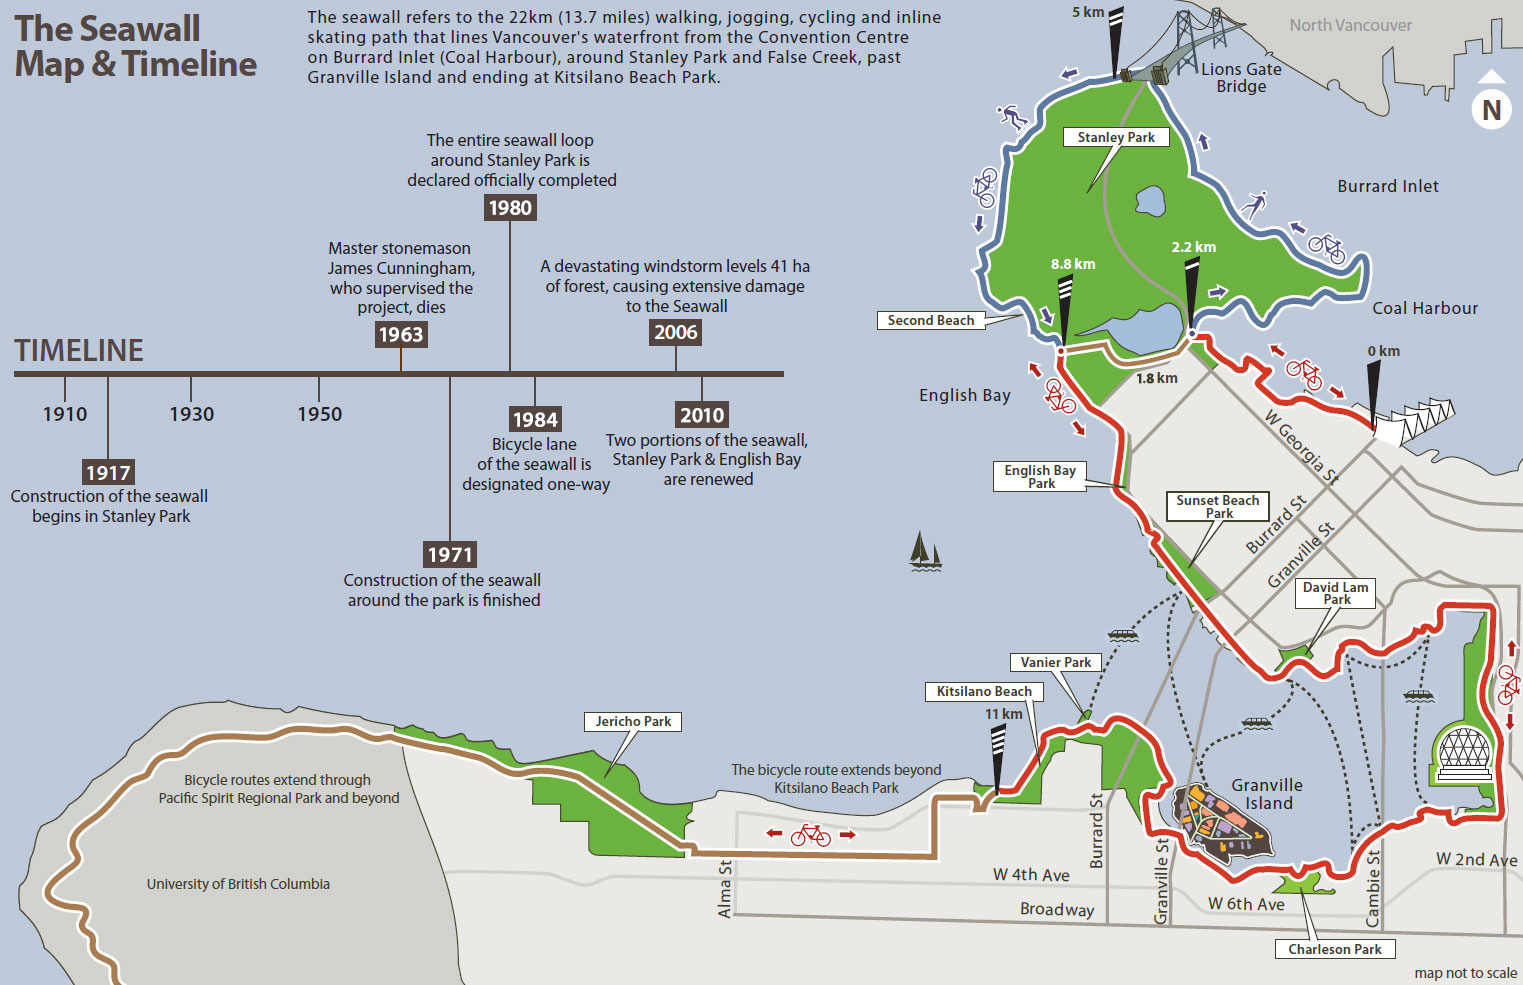 vancouver-seawall-map